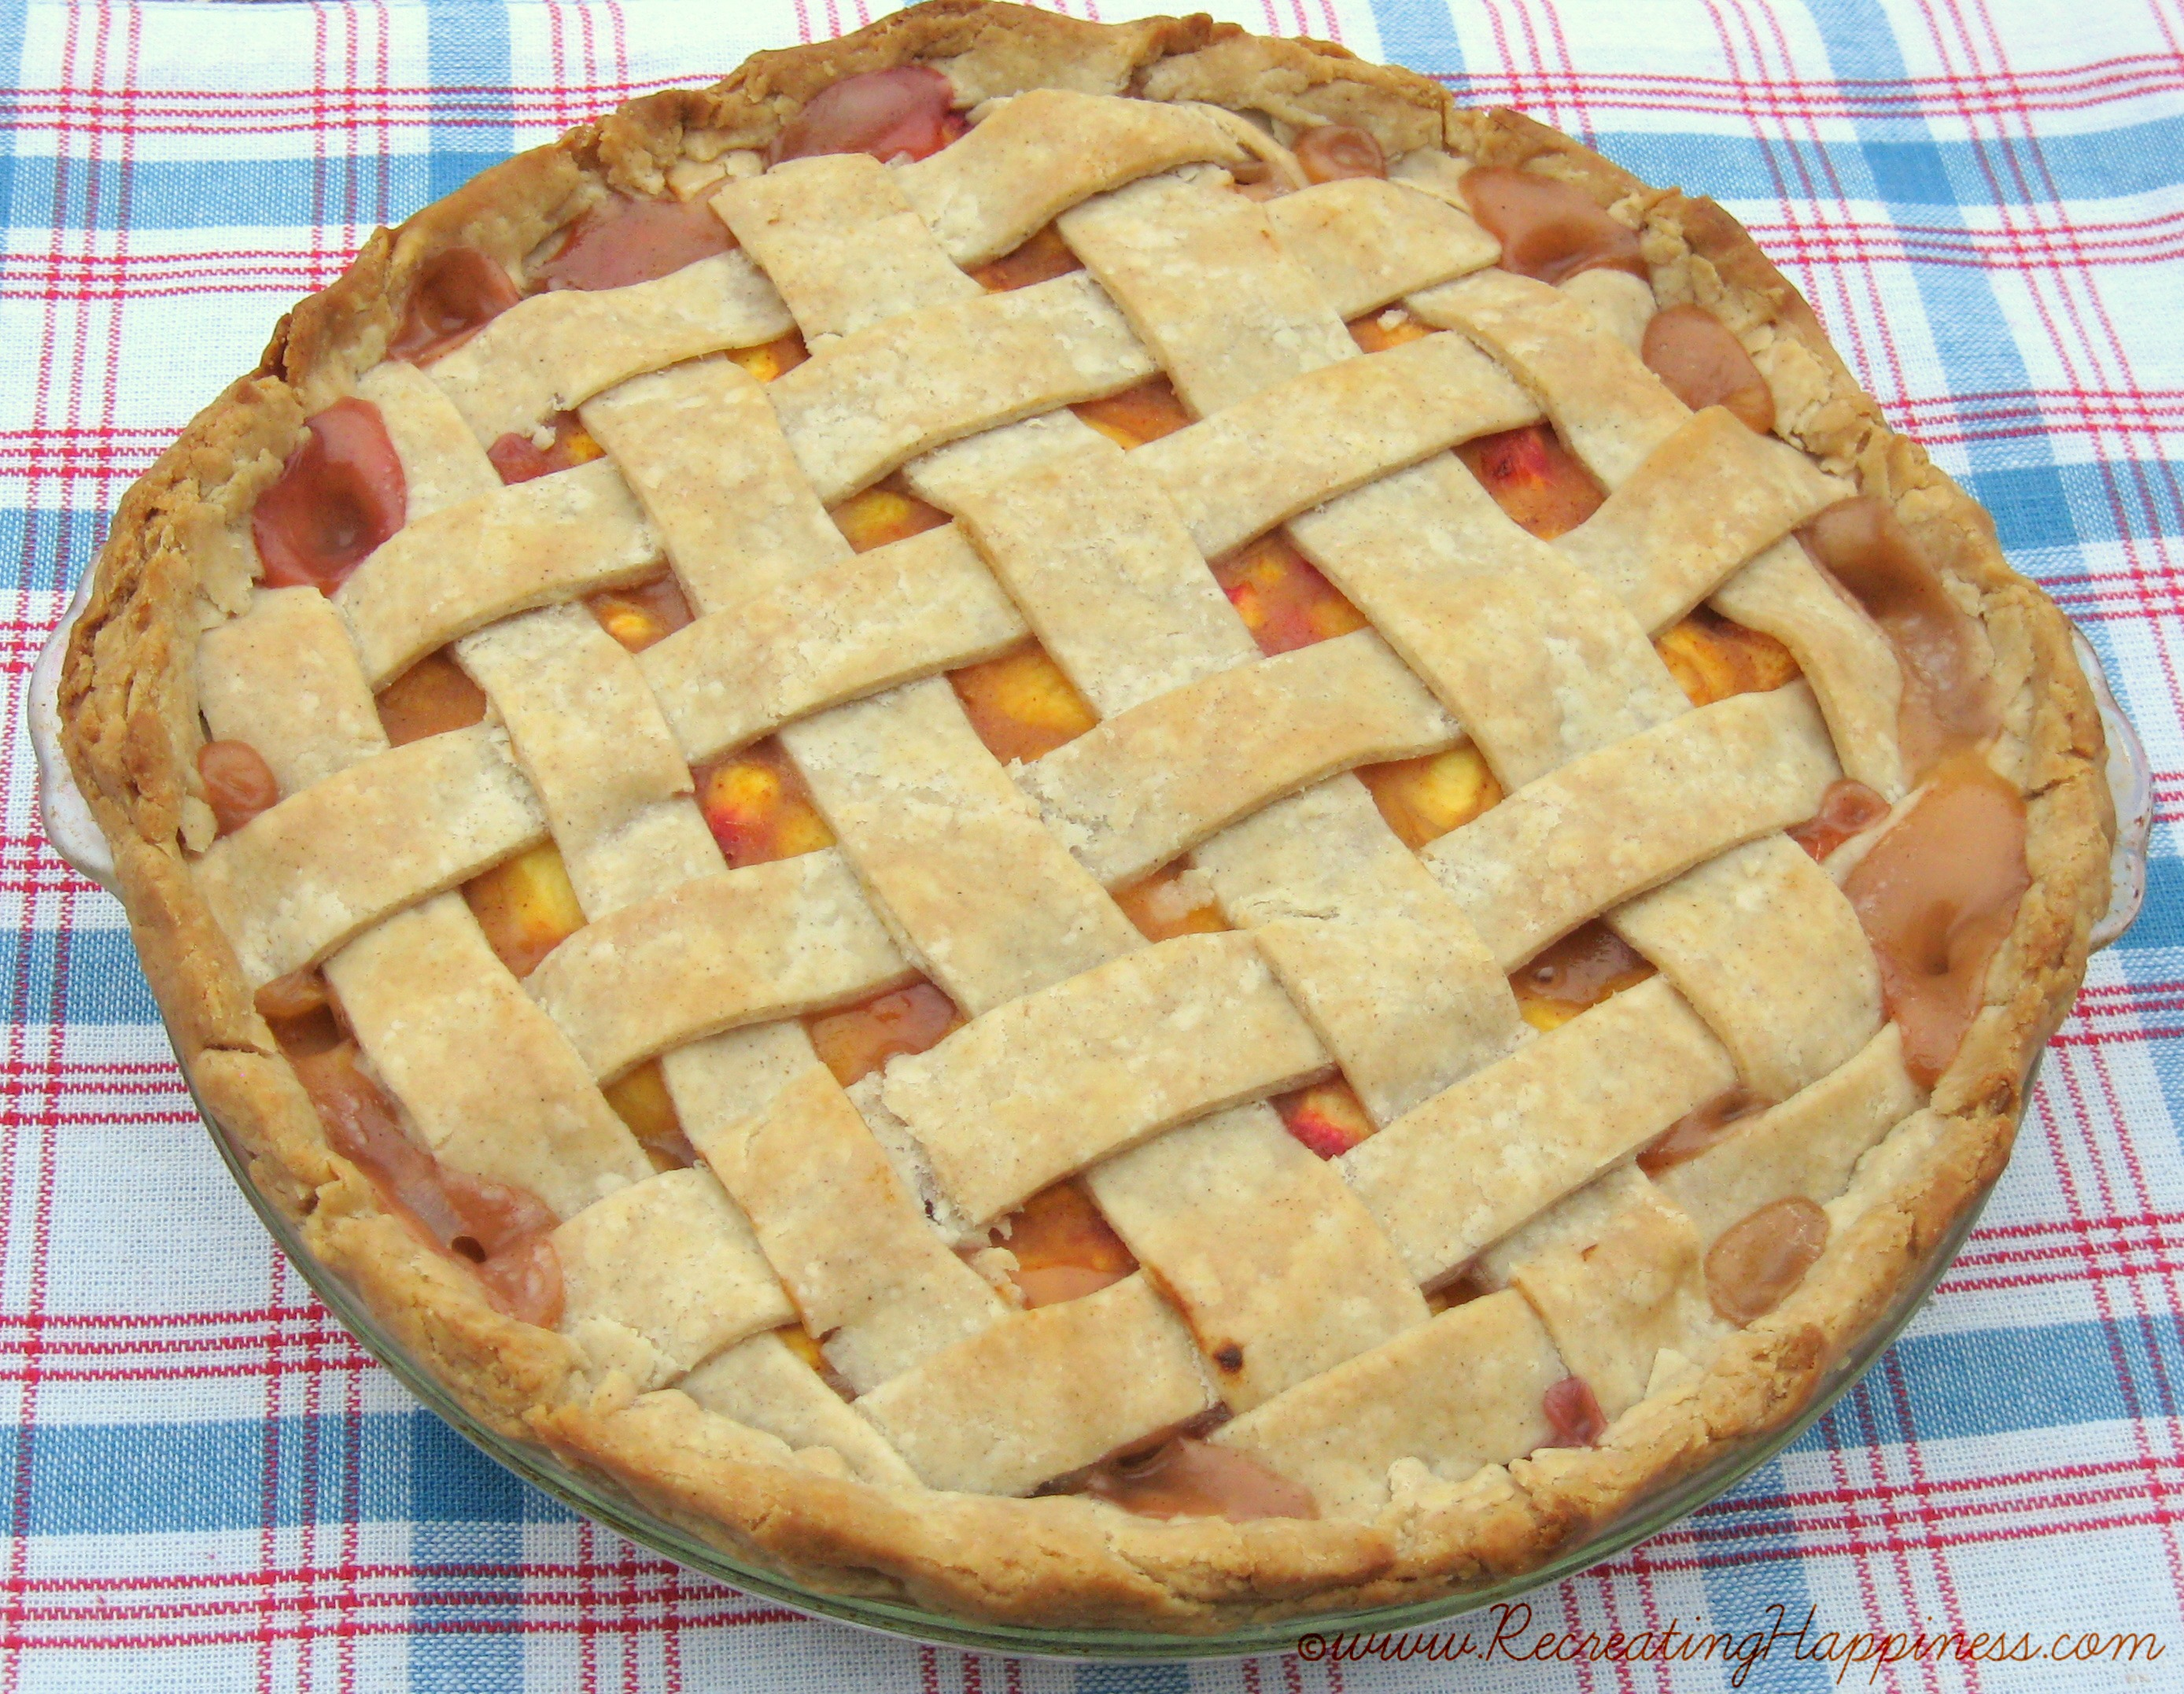 How can you make a gluten-free pie crust?